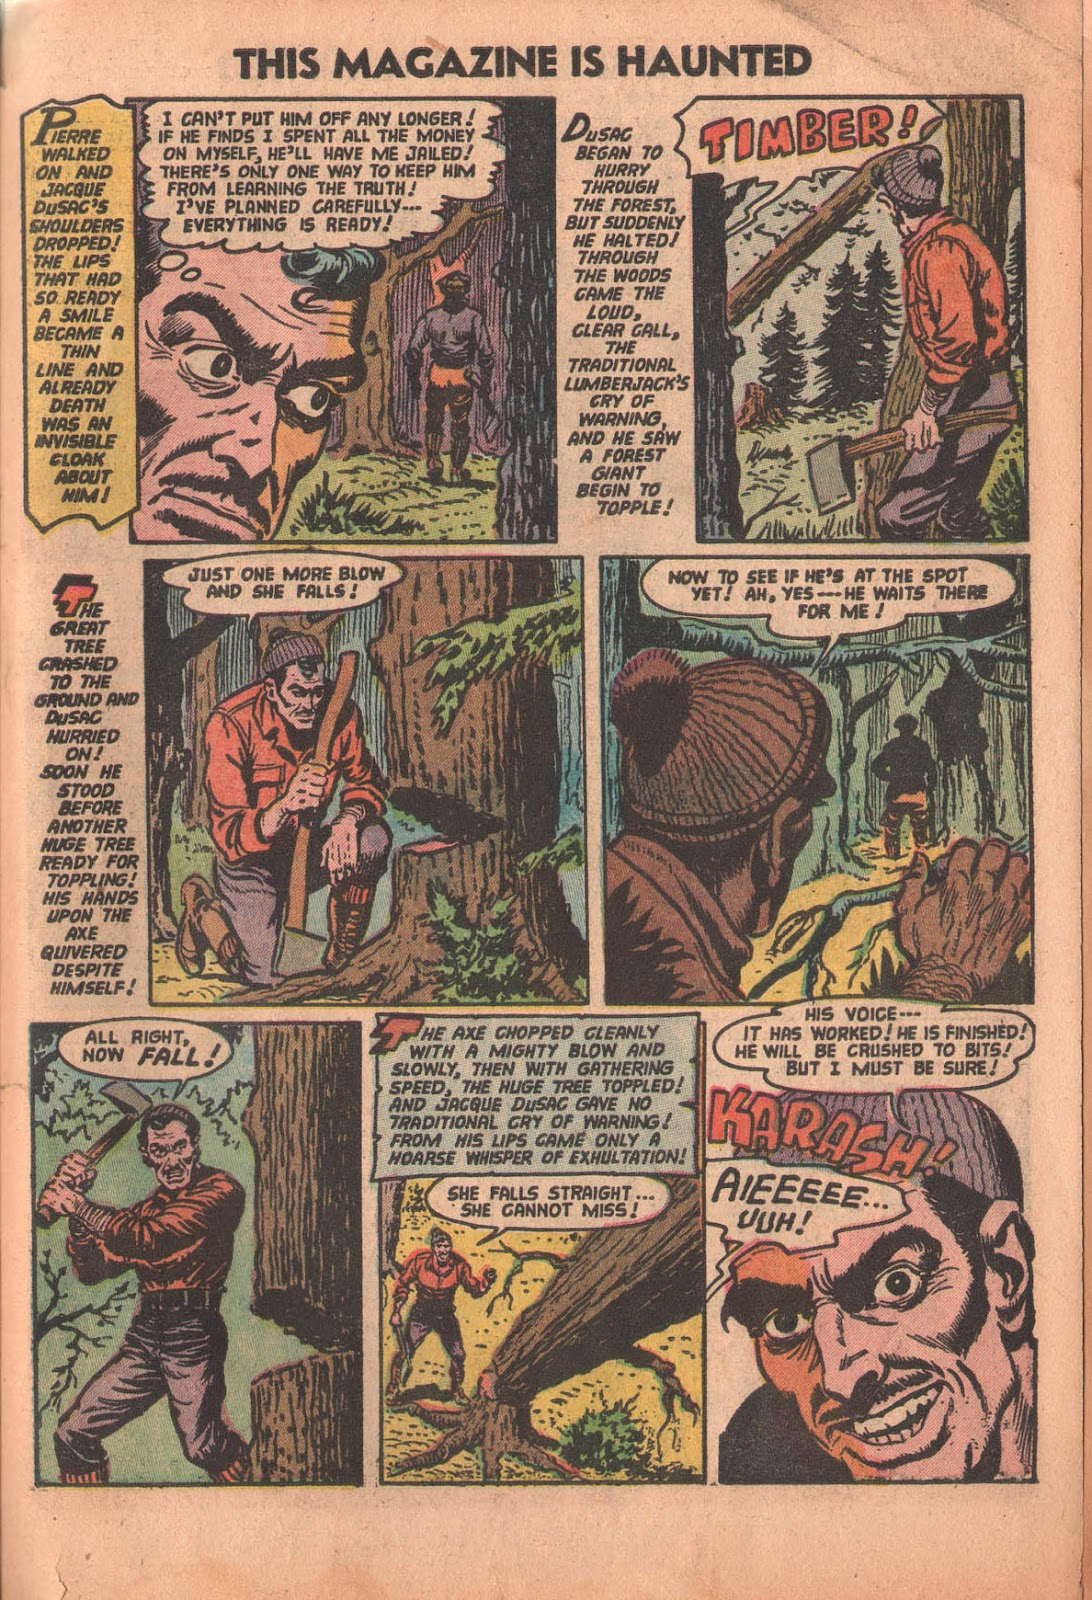 Read online This Magazine Is Haunted comic -  Issue #15 - 31